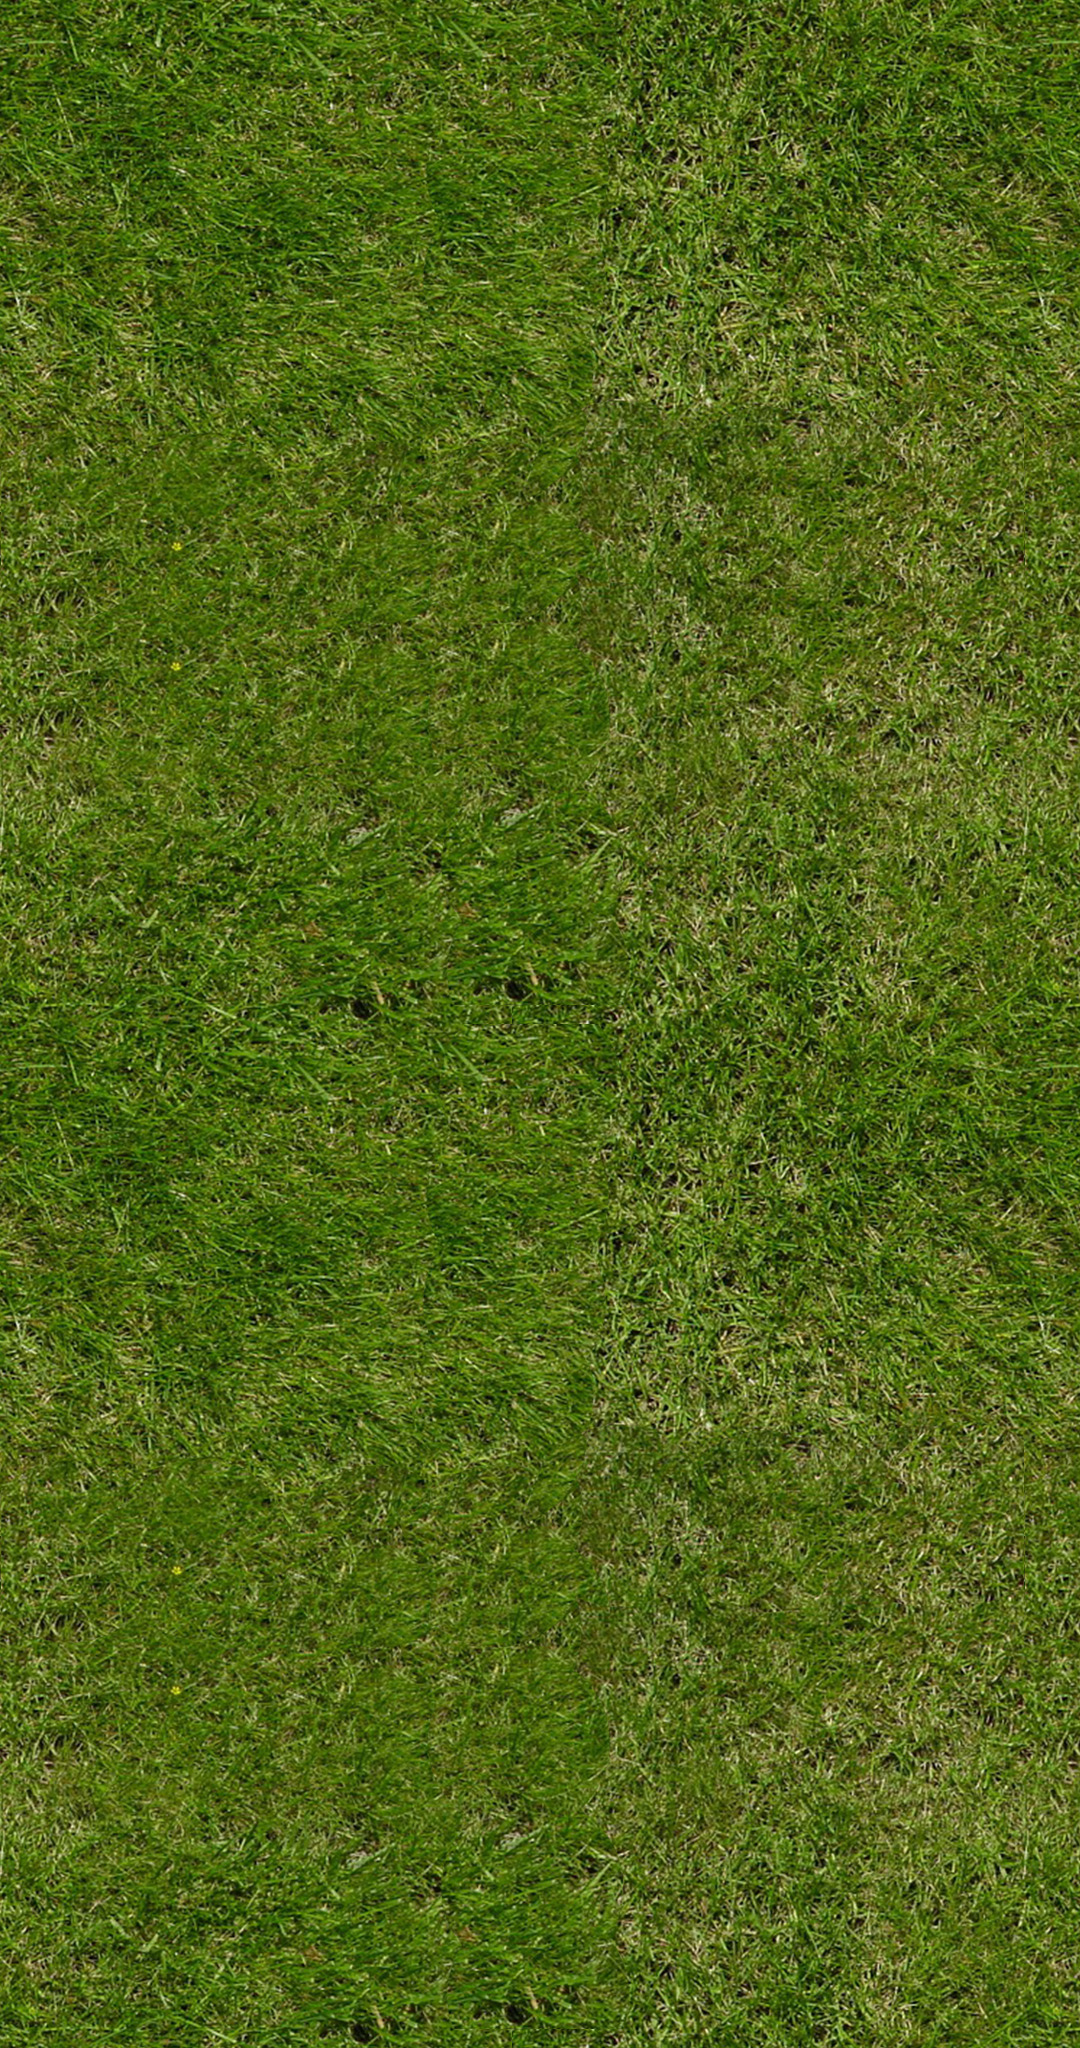 Green Grass Download Royalty Free Texture